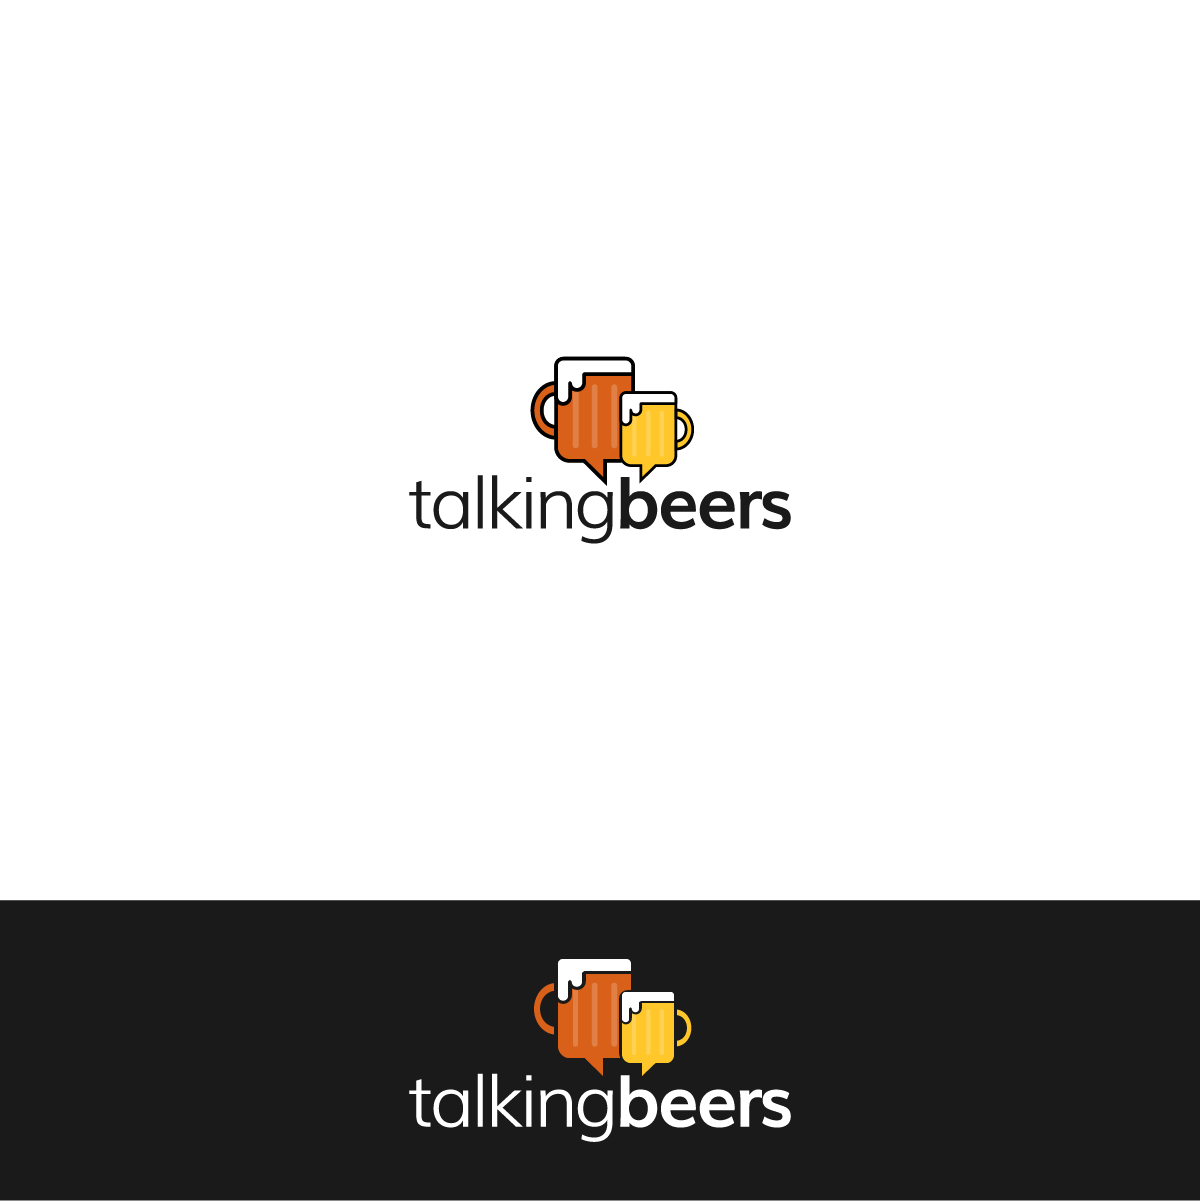 """Talking Beers"" - Help build an instant buzz for this new craft beer community!"